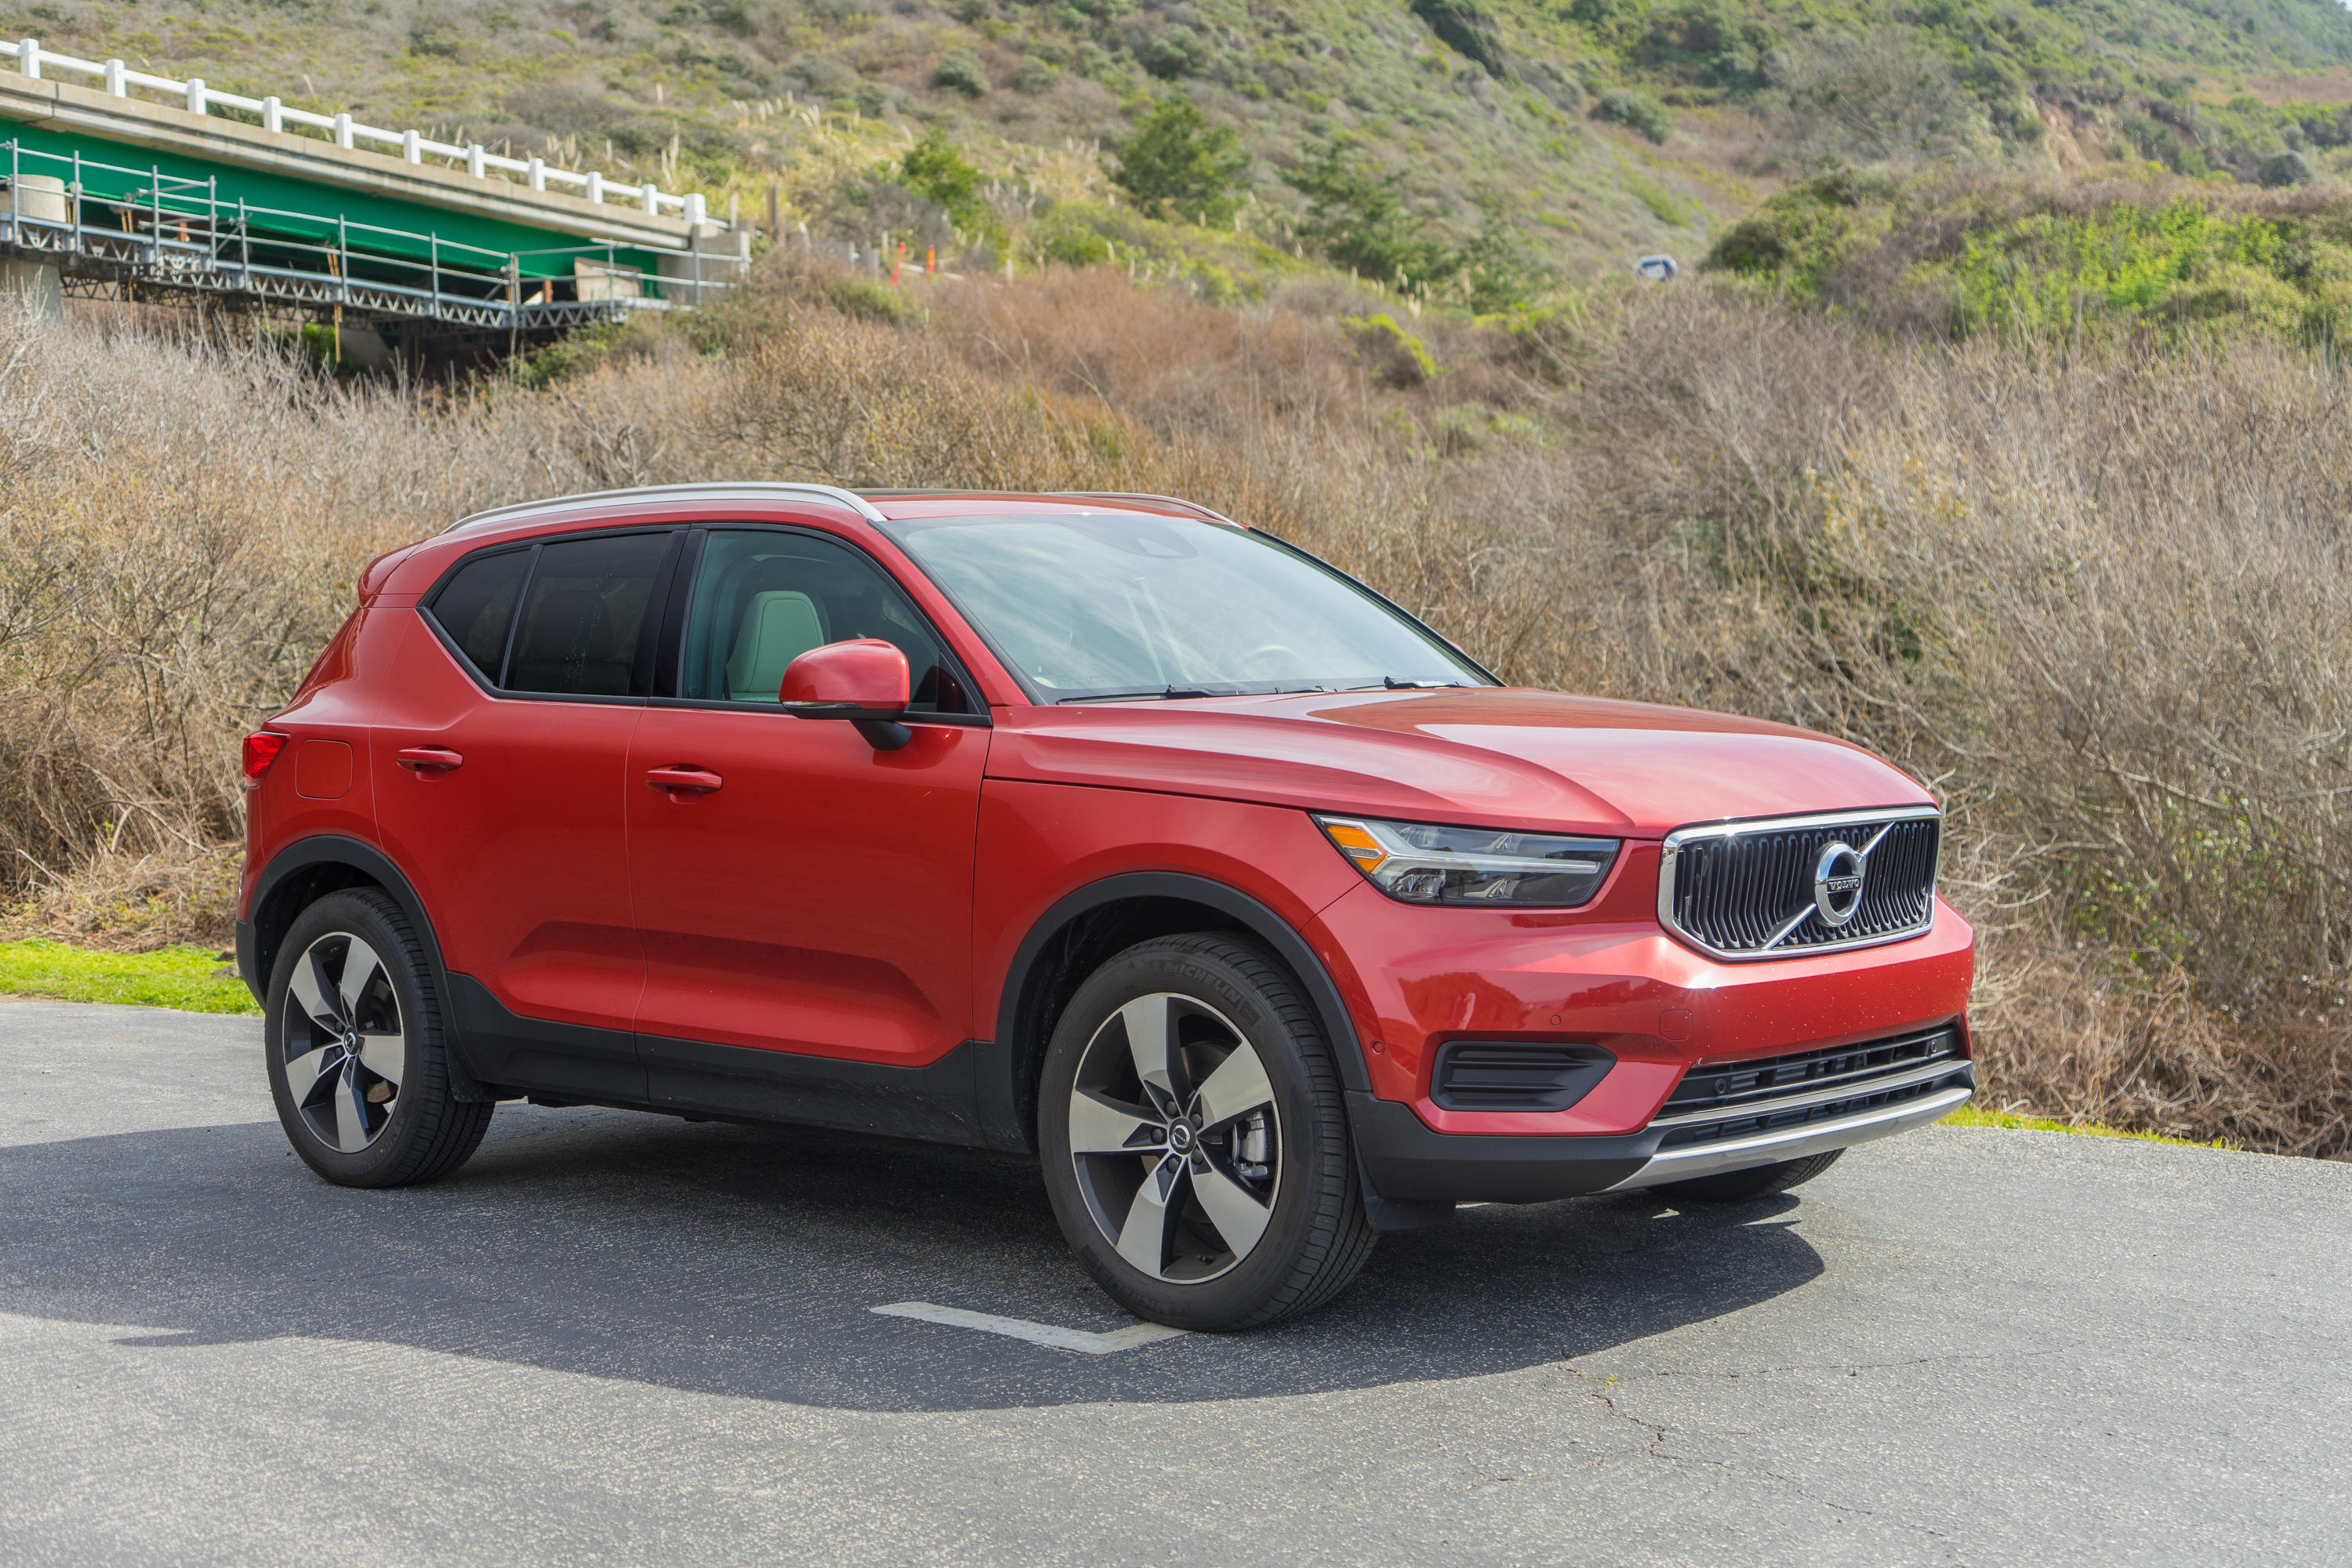 2019volvoxc40roadtrip-1